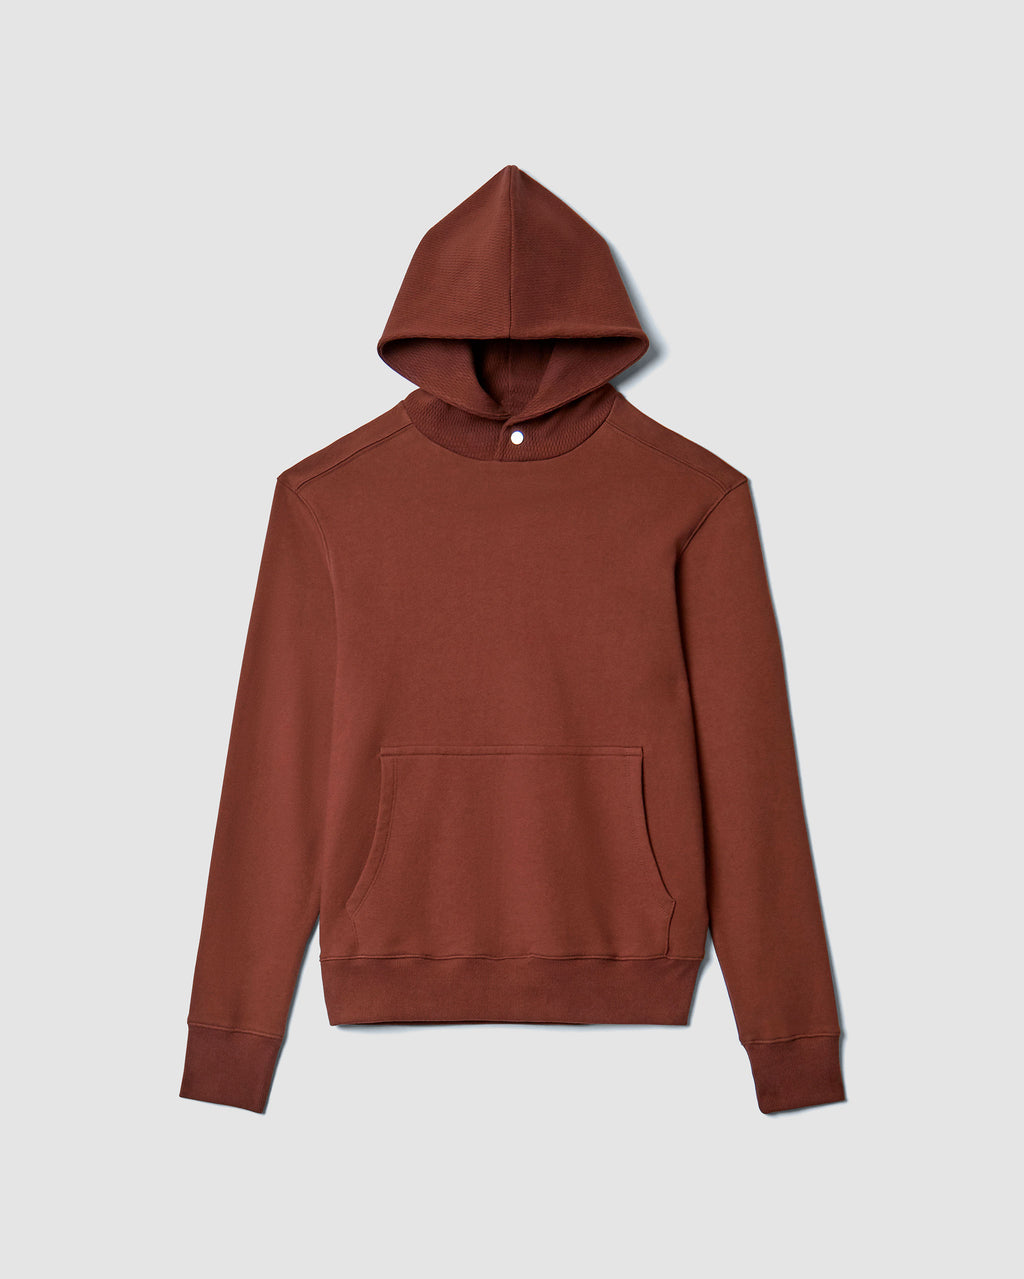 The Cale Hoodie in Brick